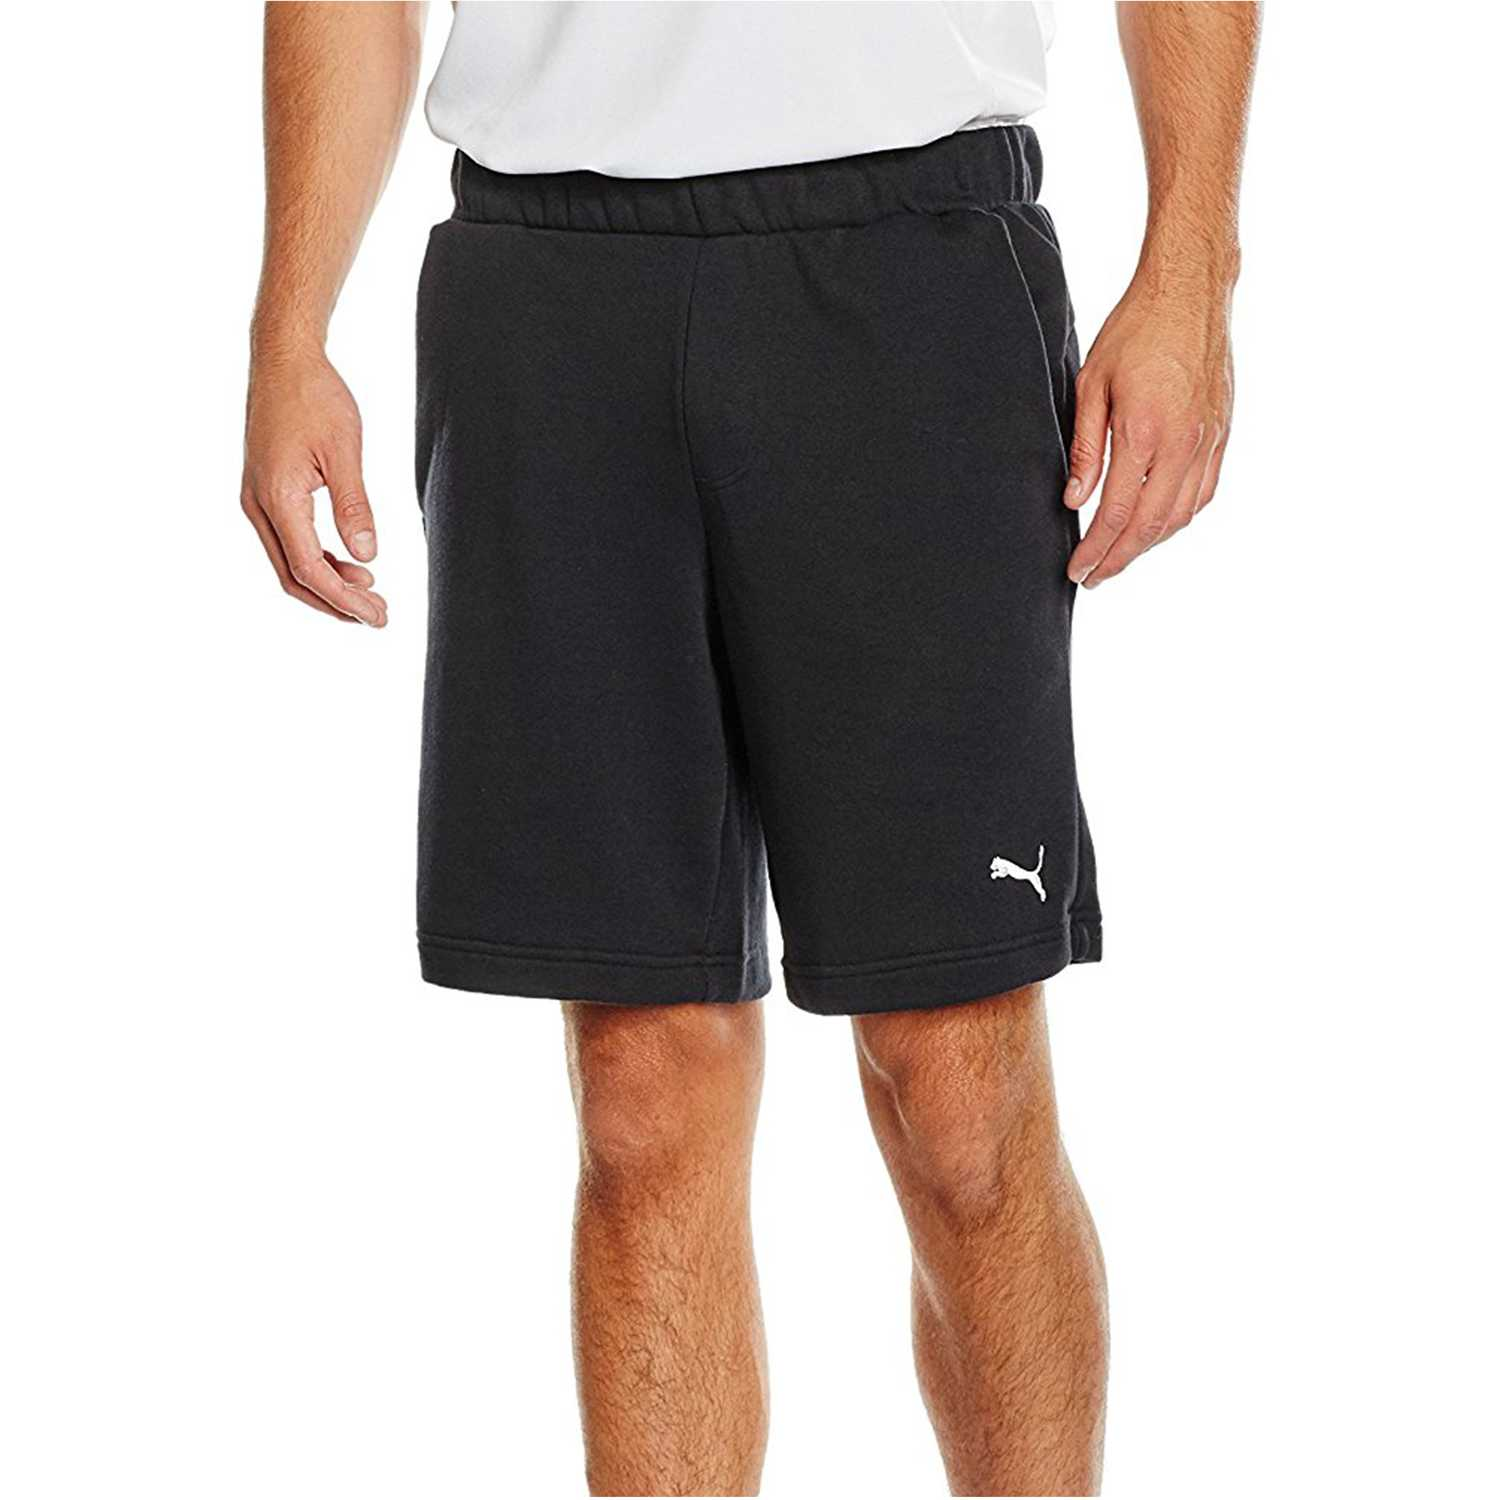 2139292c2e Short de Hombre Puma Negro ess sweat shorts 9